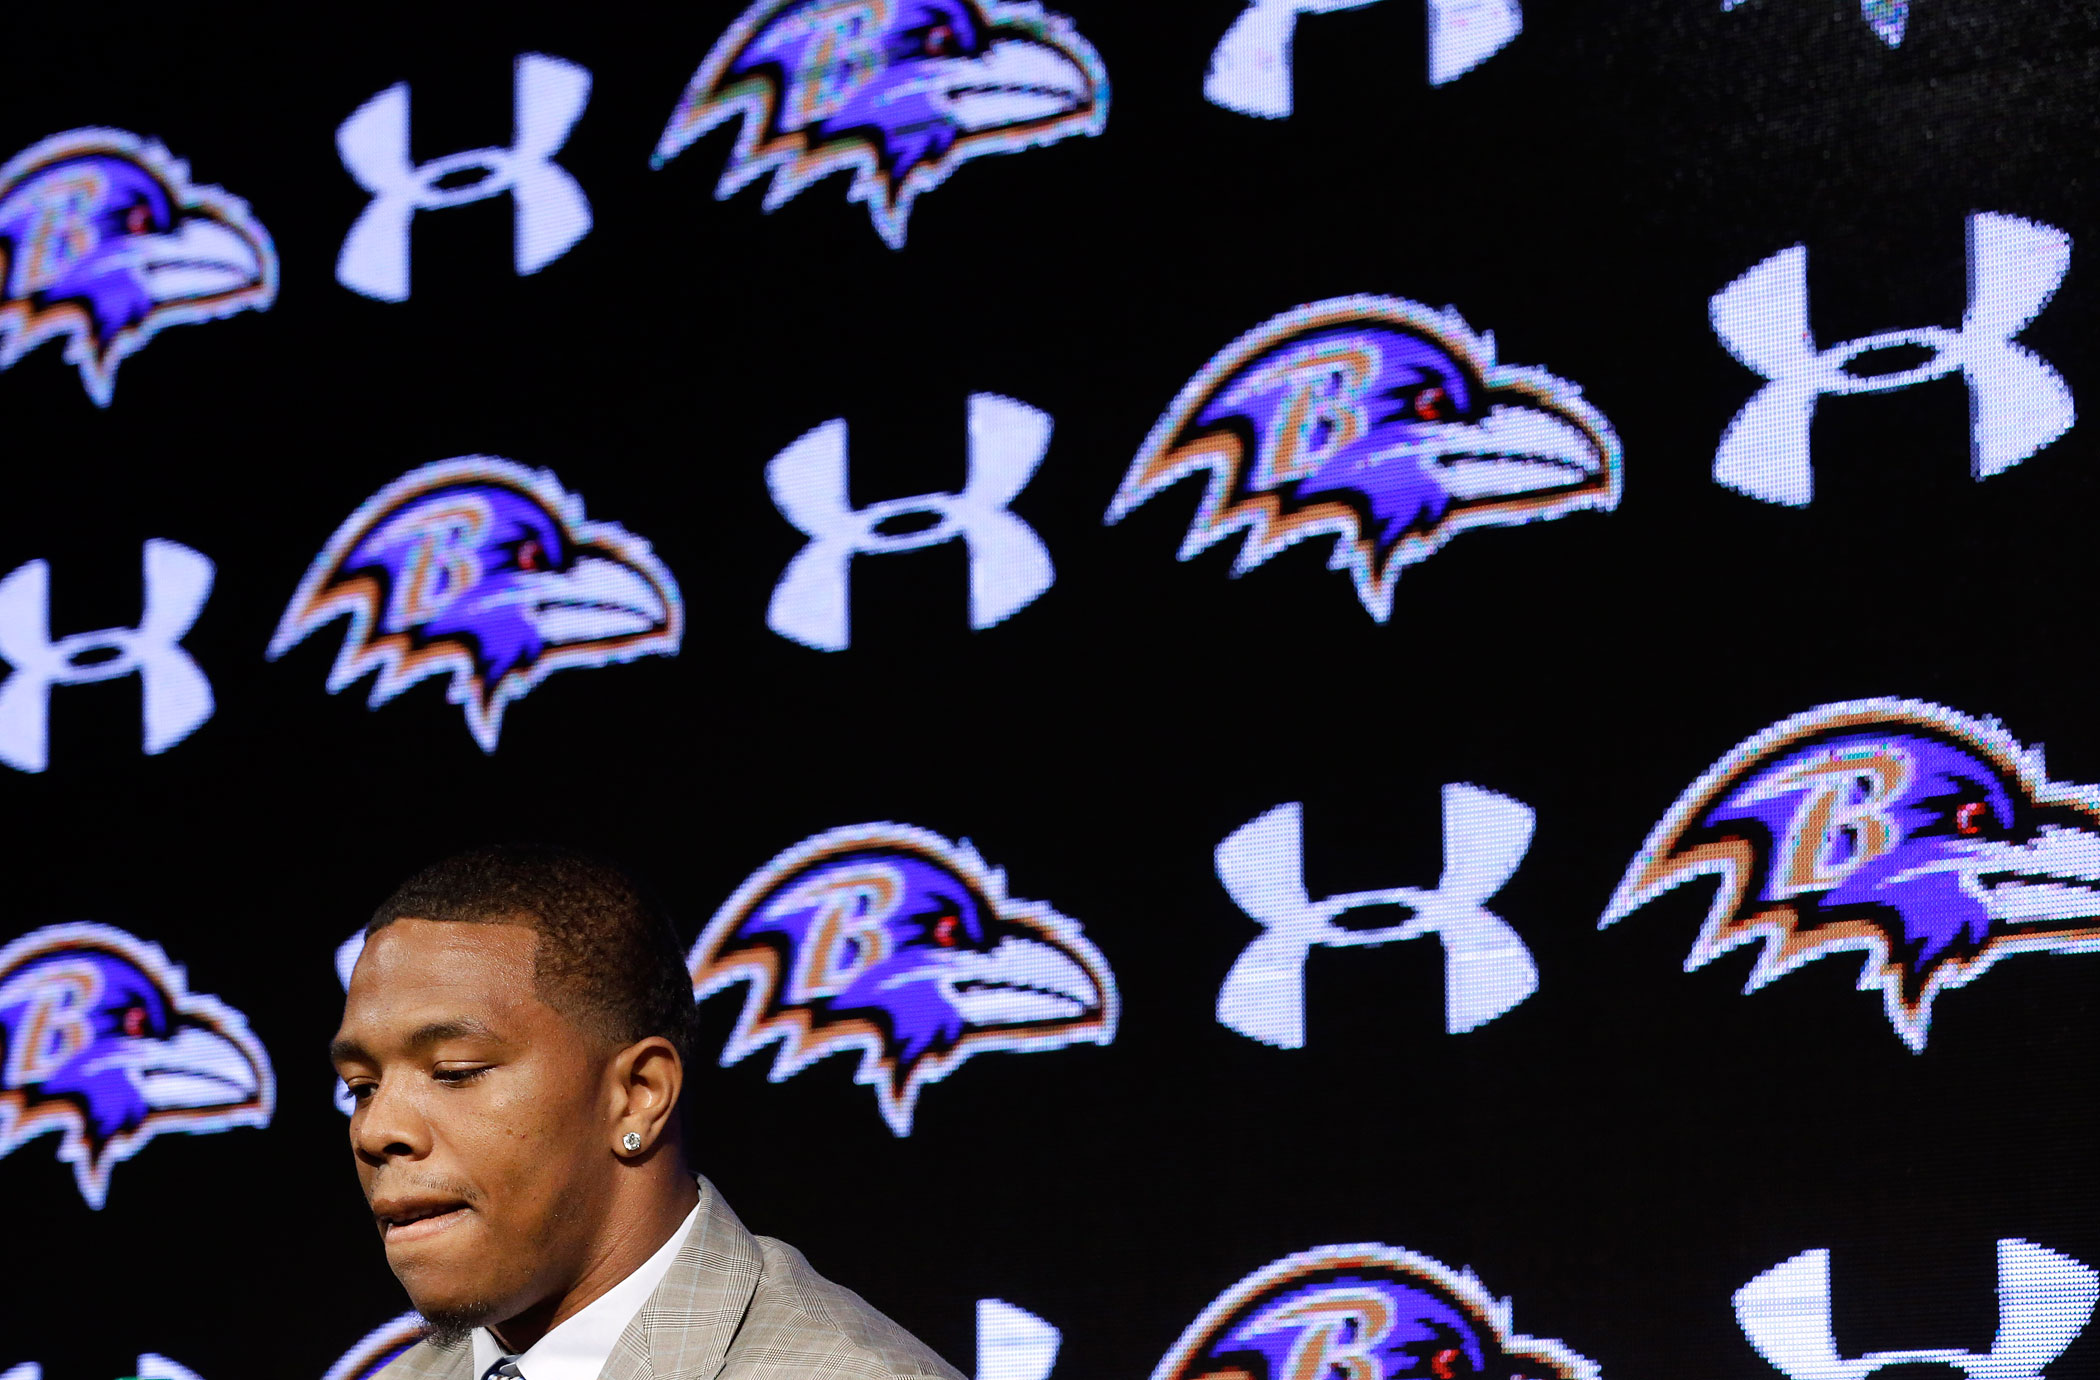 Baltimore Ravens running back Ray Rice pauses as he speaks during an NFL football news conference, Friday, May 23, 2014, in Owings Mills, Md.